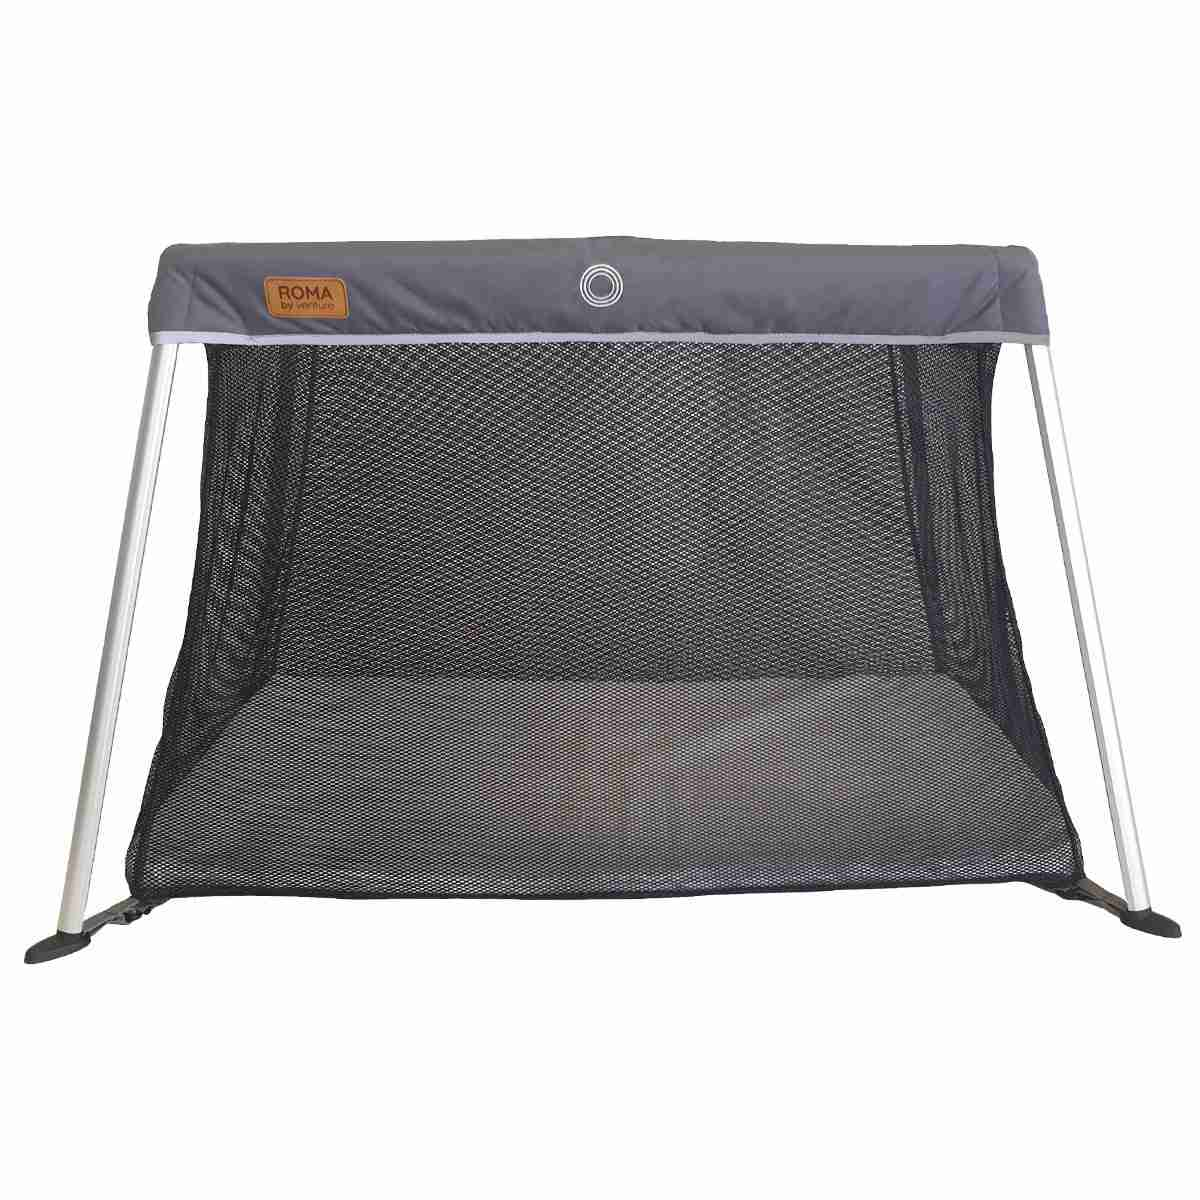 Large and spacious travel cot